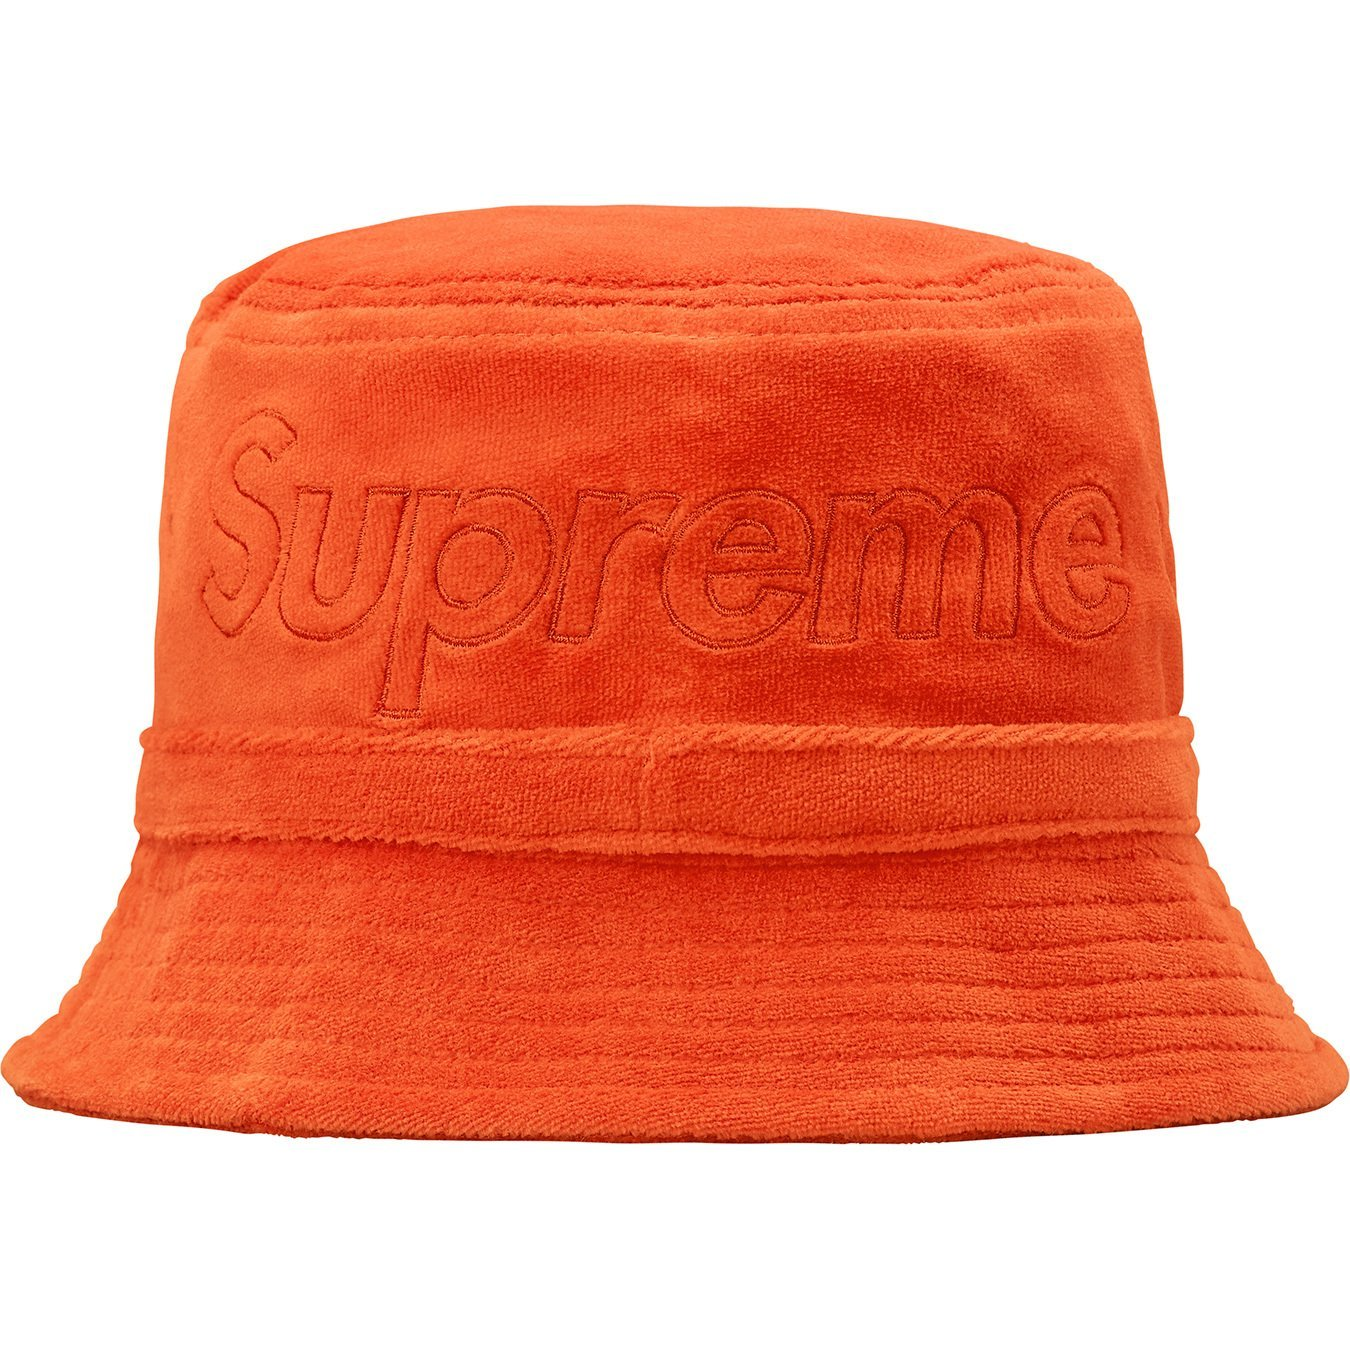 supreme-lacoste-18ss-collaboration-release-201180421-velour-bucket-hat